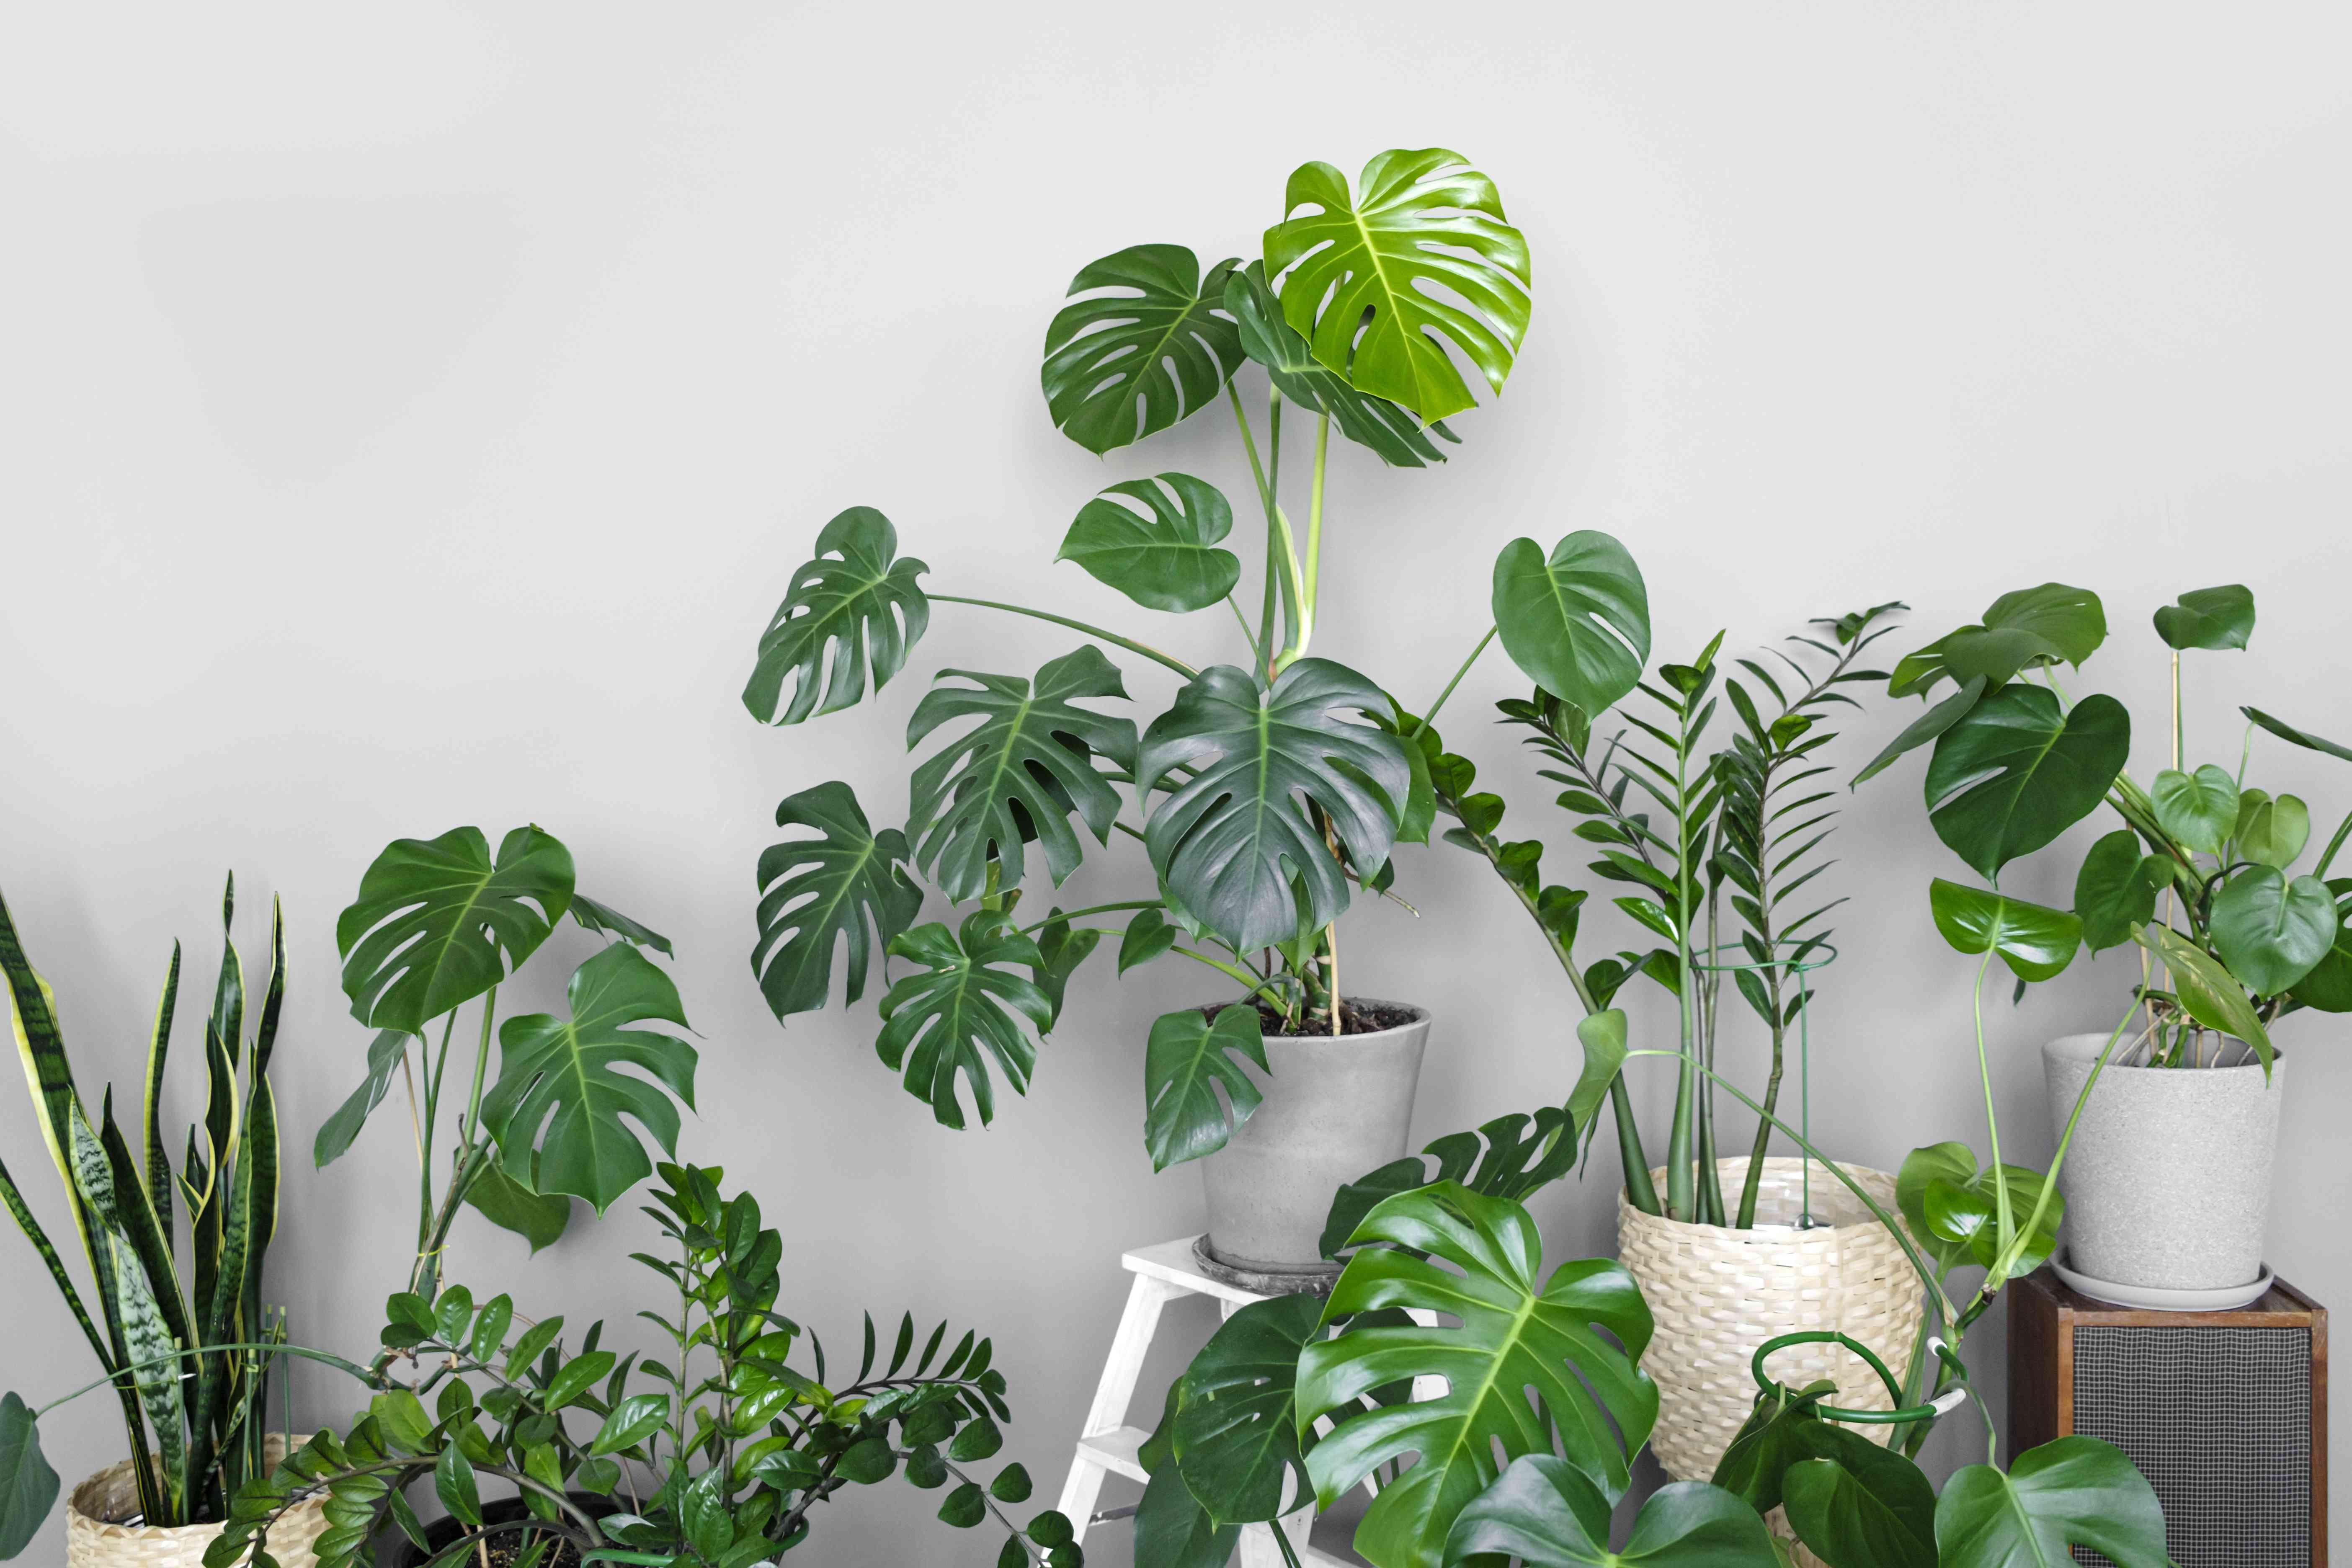 A collection of house plants in front of a white wall.